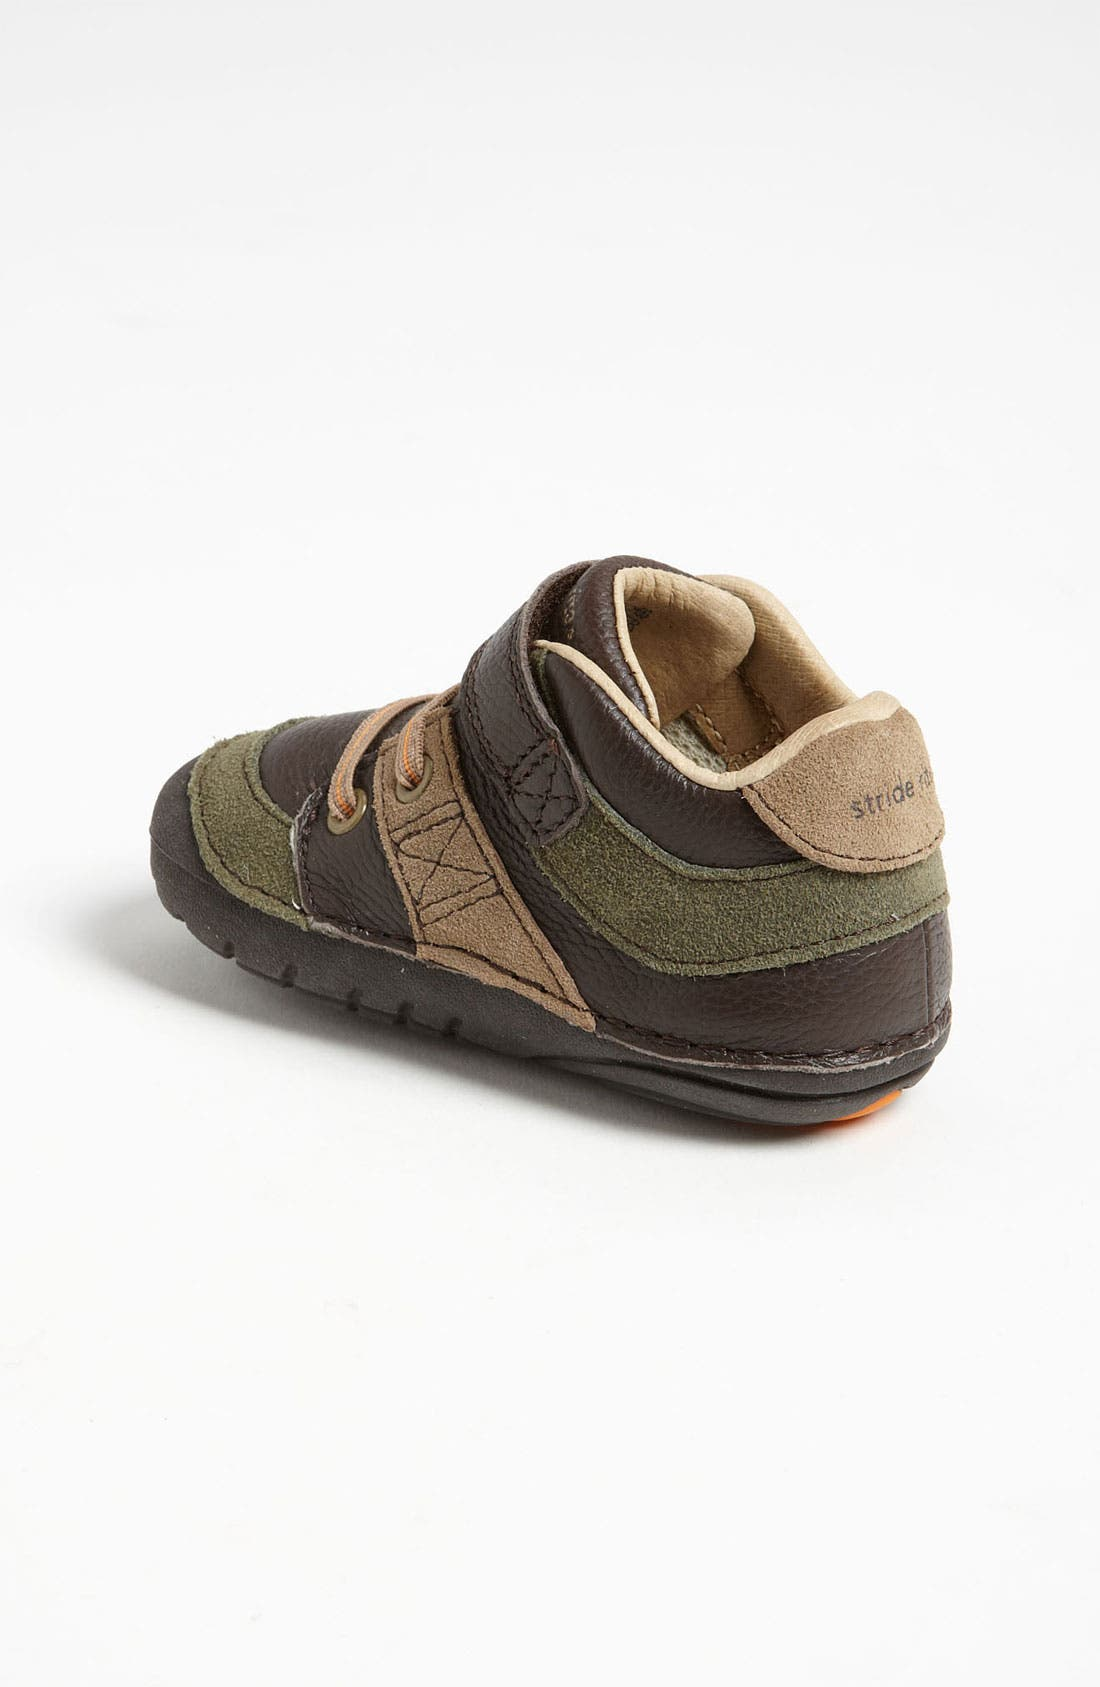 Alternate Image 2  - Stride Rite 'Julien' Sneaker (Baby & Walker)